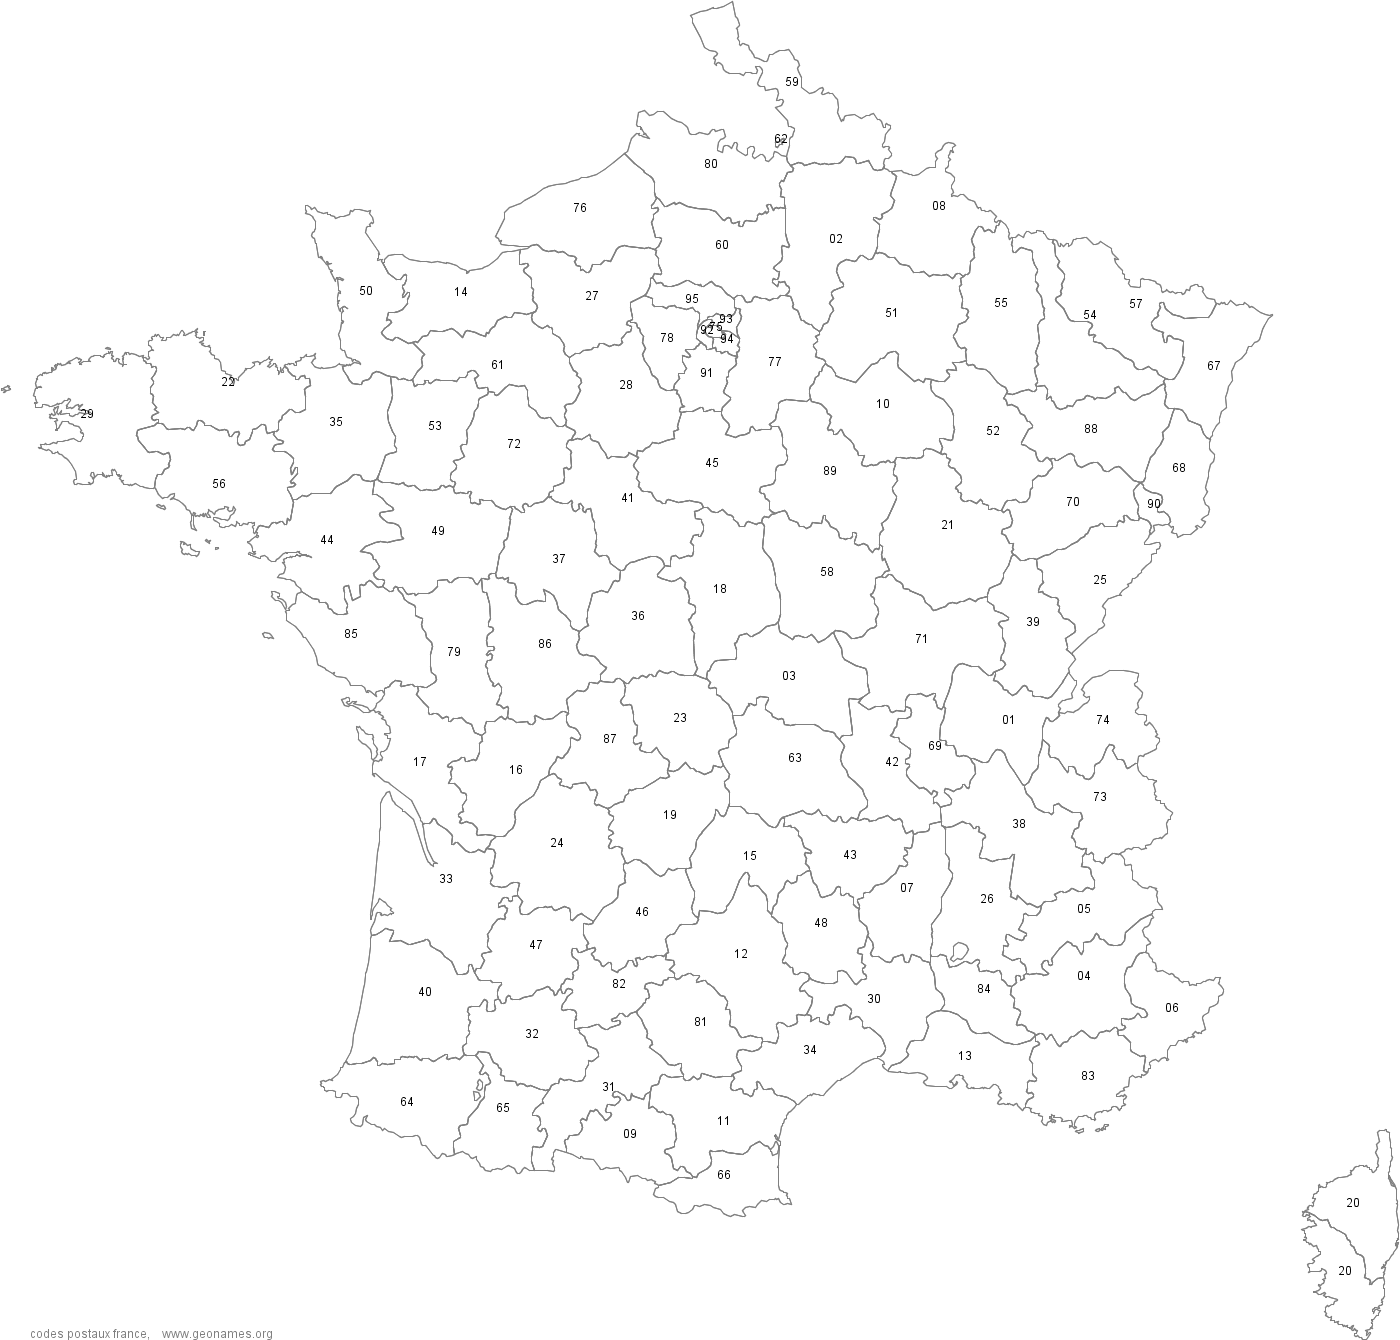 Carte des codes postaux en France